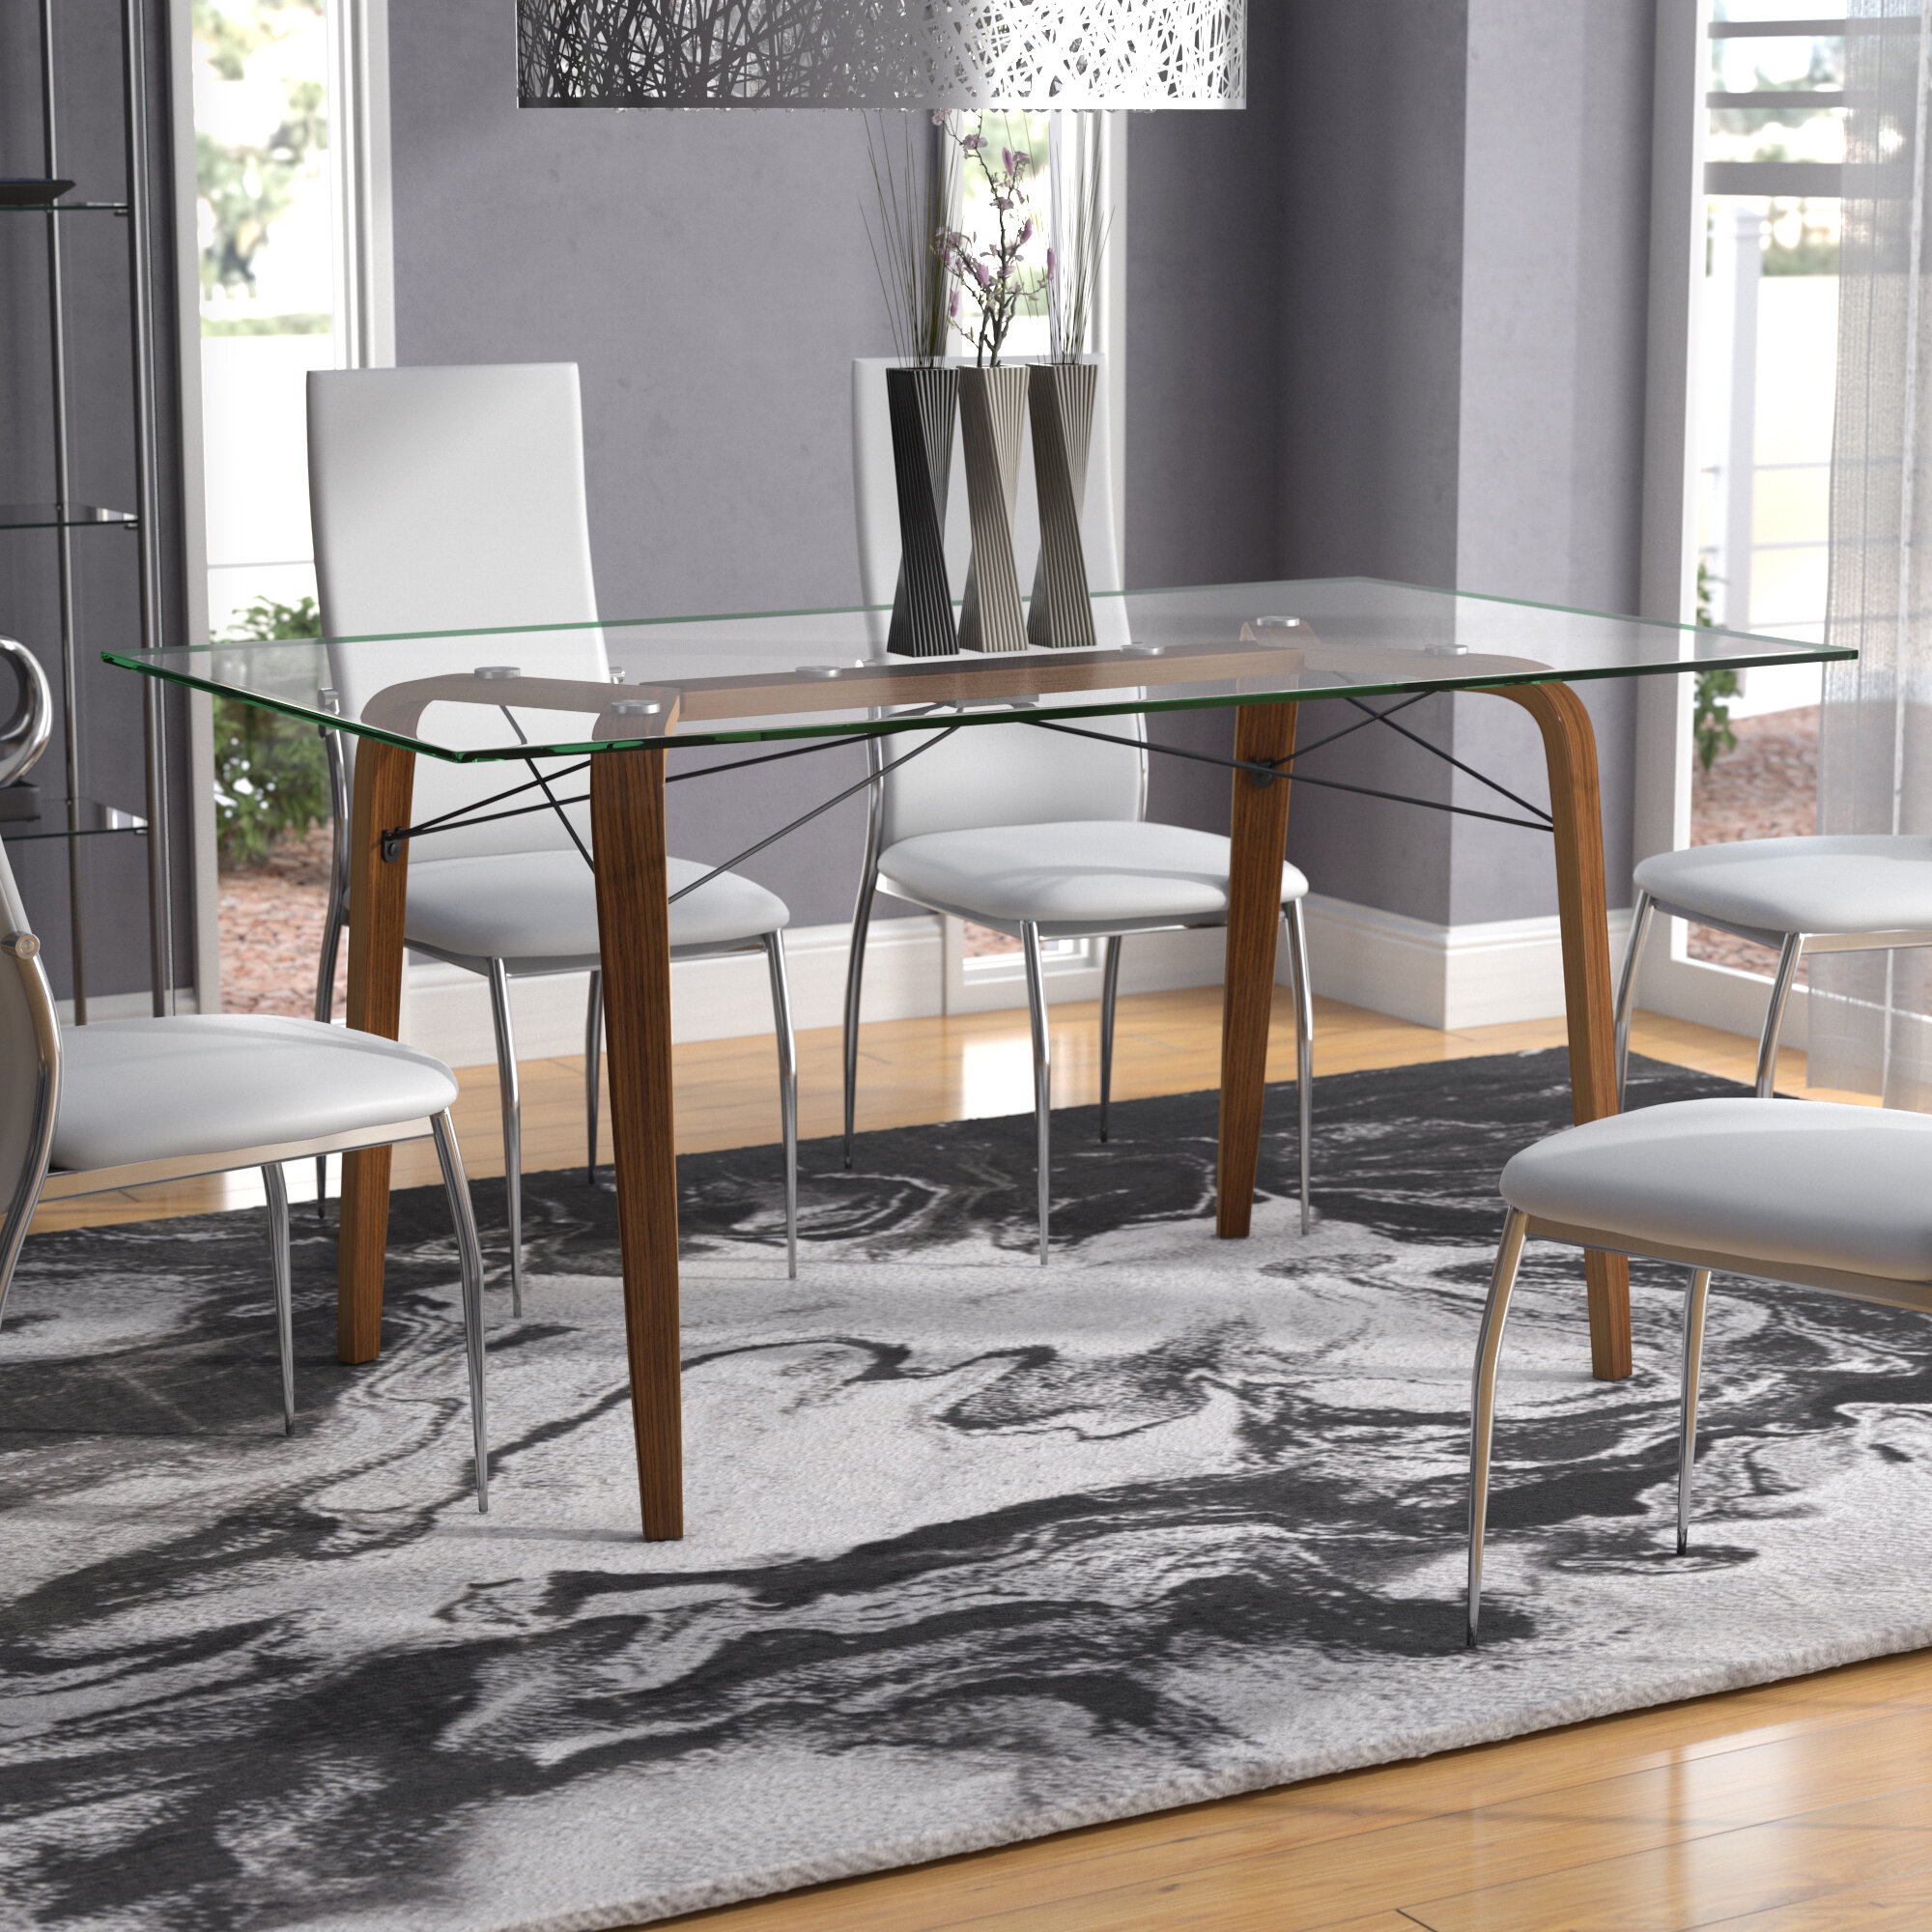 Langley Street Wexford Square Mid Century Modern Dining Table & Reviews